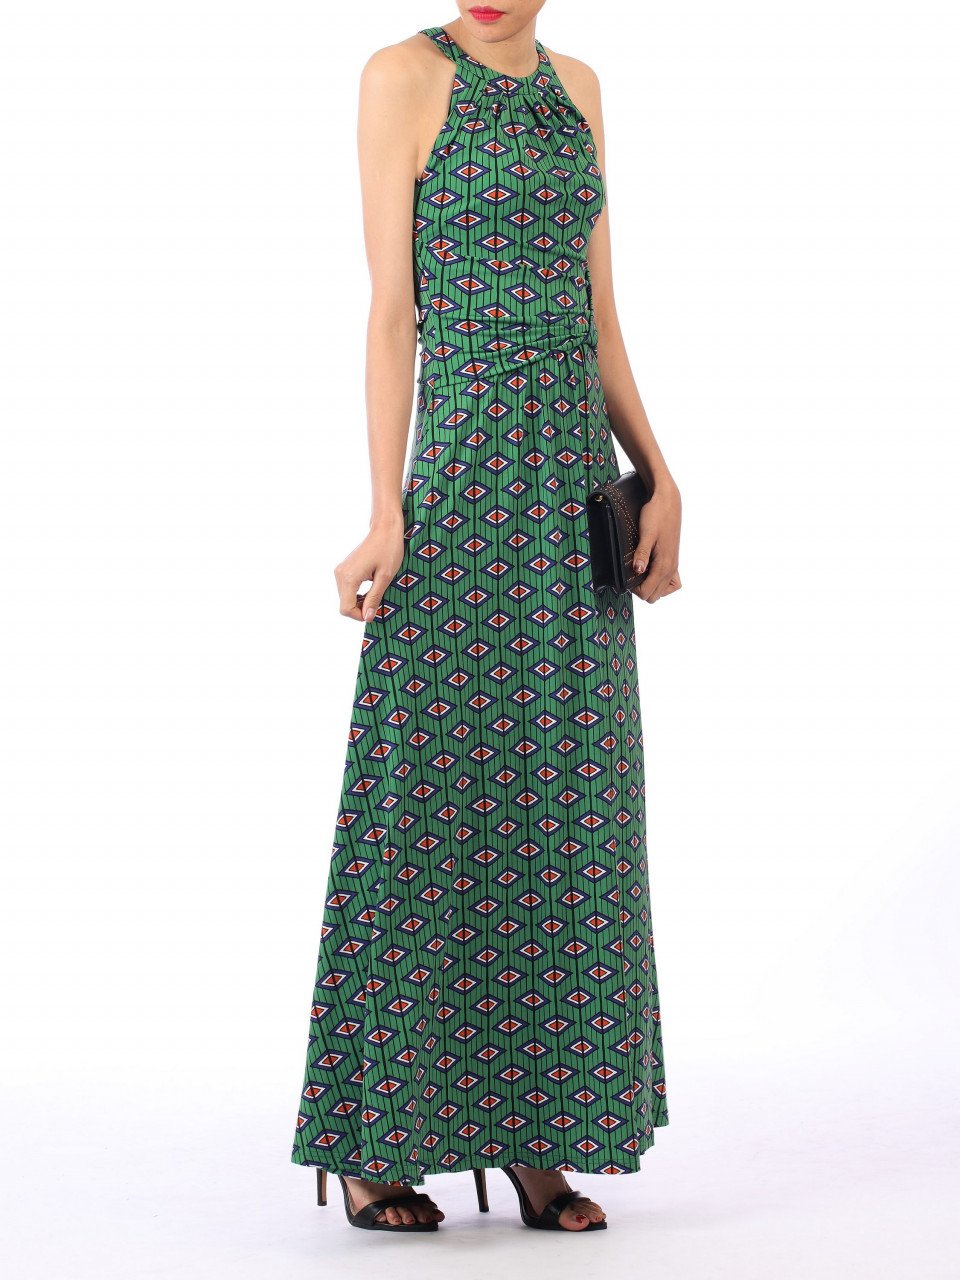 Jolie Moi Geometric Print Halter Neck Maxi Dress, Green Geo